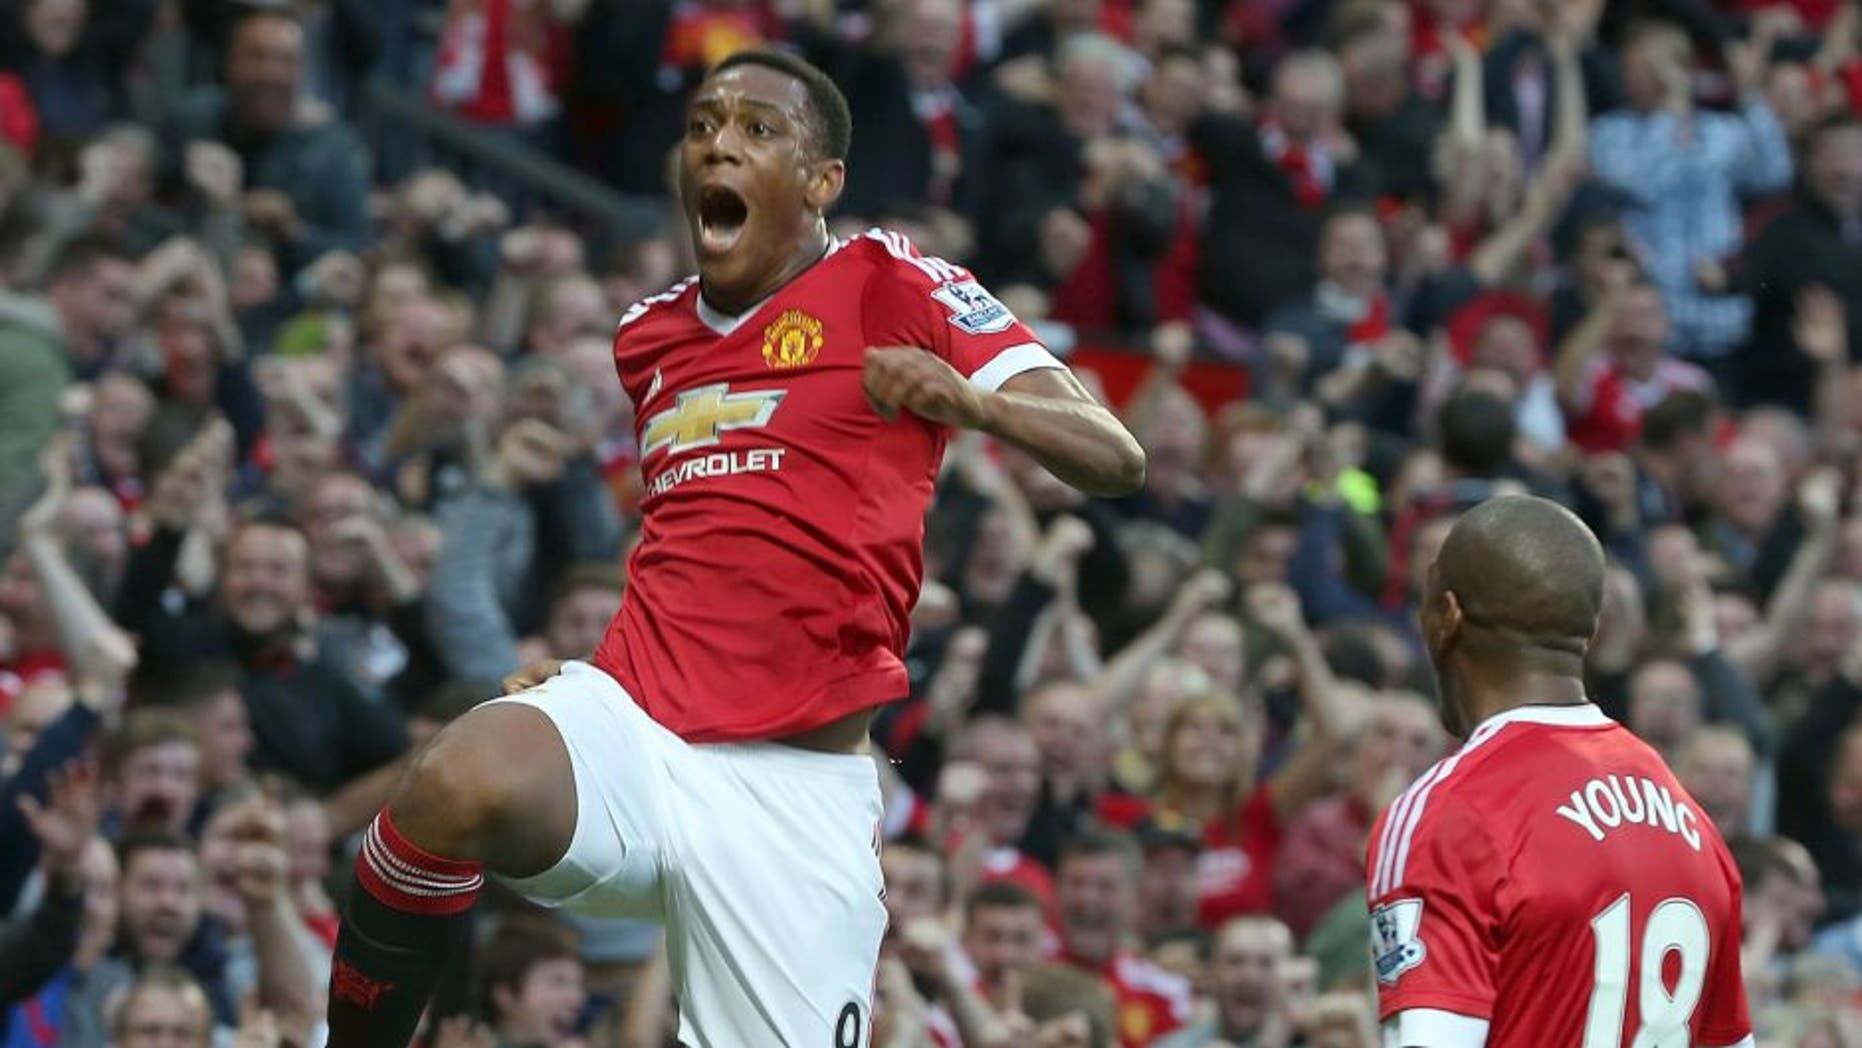 MANCHESTER, ENGLAND - SEPTEMBER 12: Anthony Martial of Manchester United celebrates scoring their third goal during the Barclays Premier League match between Manchester United and Liverpool on September 12, 2015 at Old Trafford in Manchester, United Kingdom. (Photo by Matthew Peters/Man Utd via Getty Images)